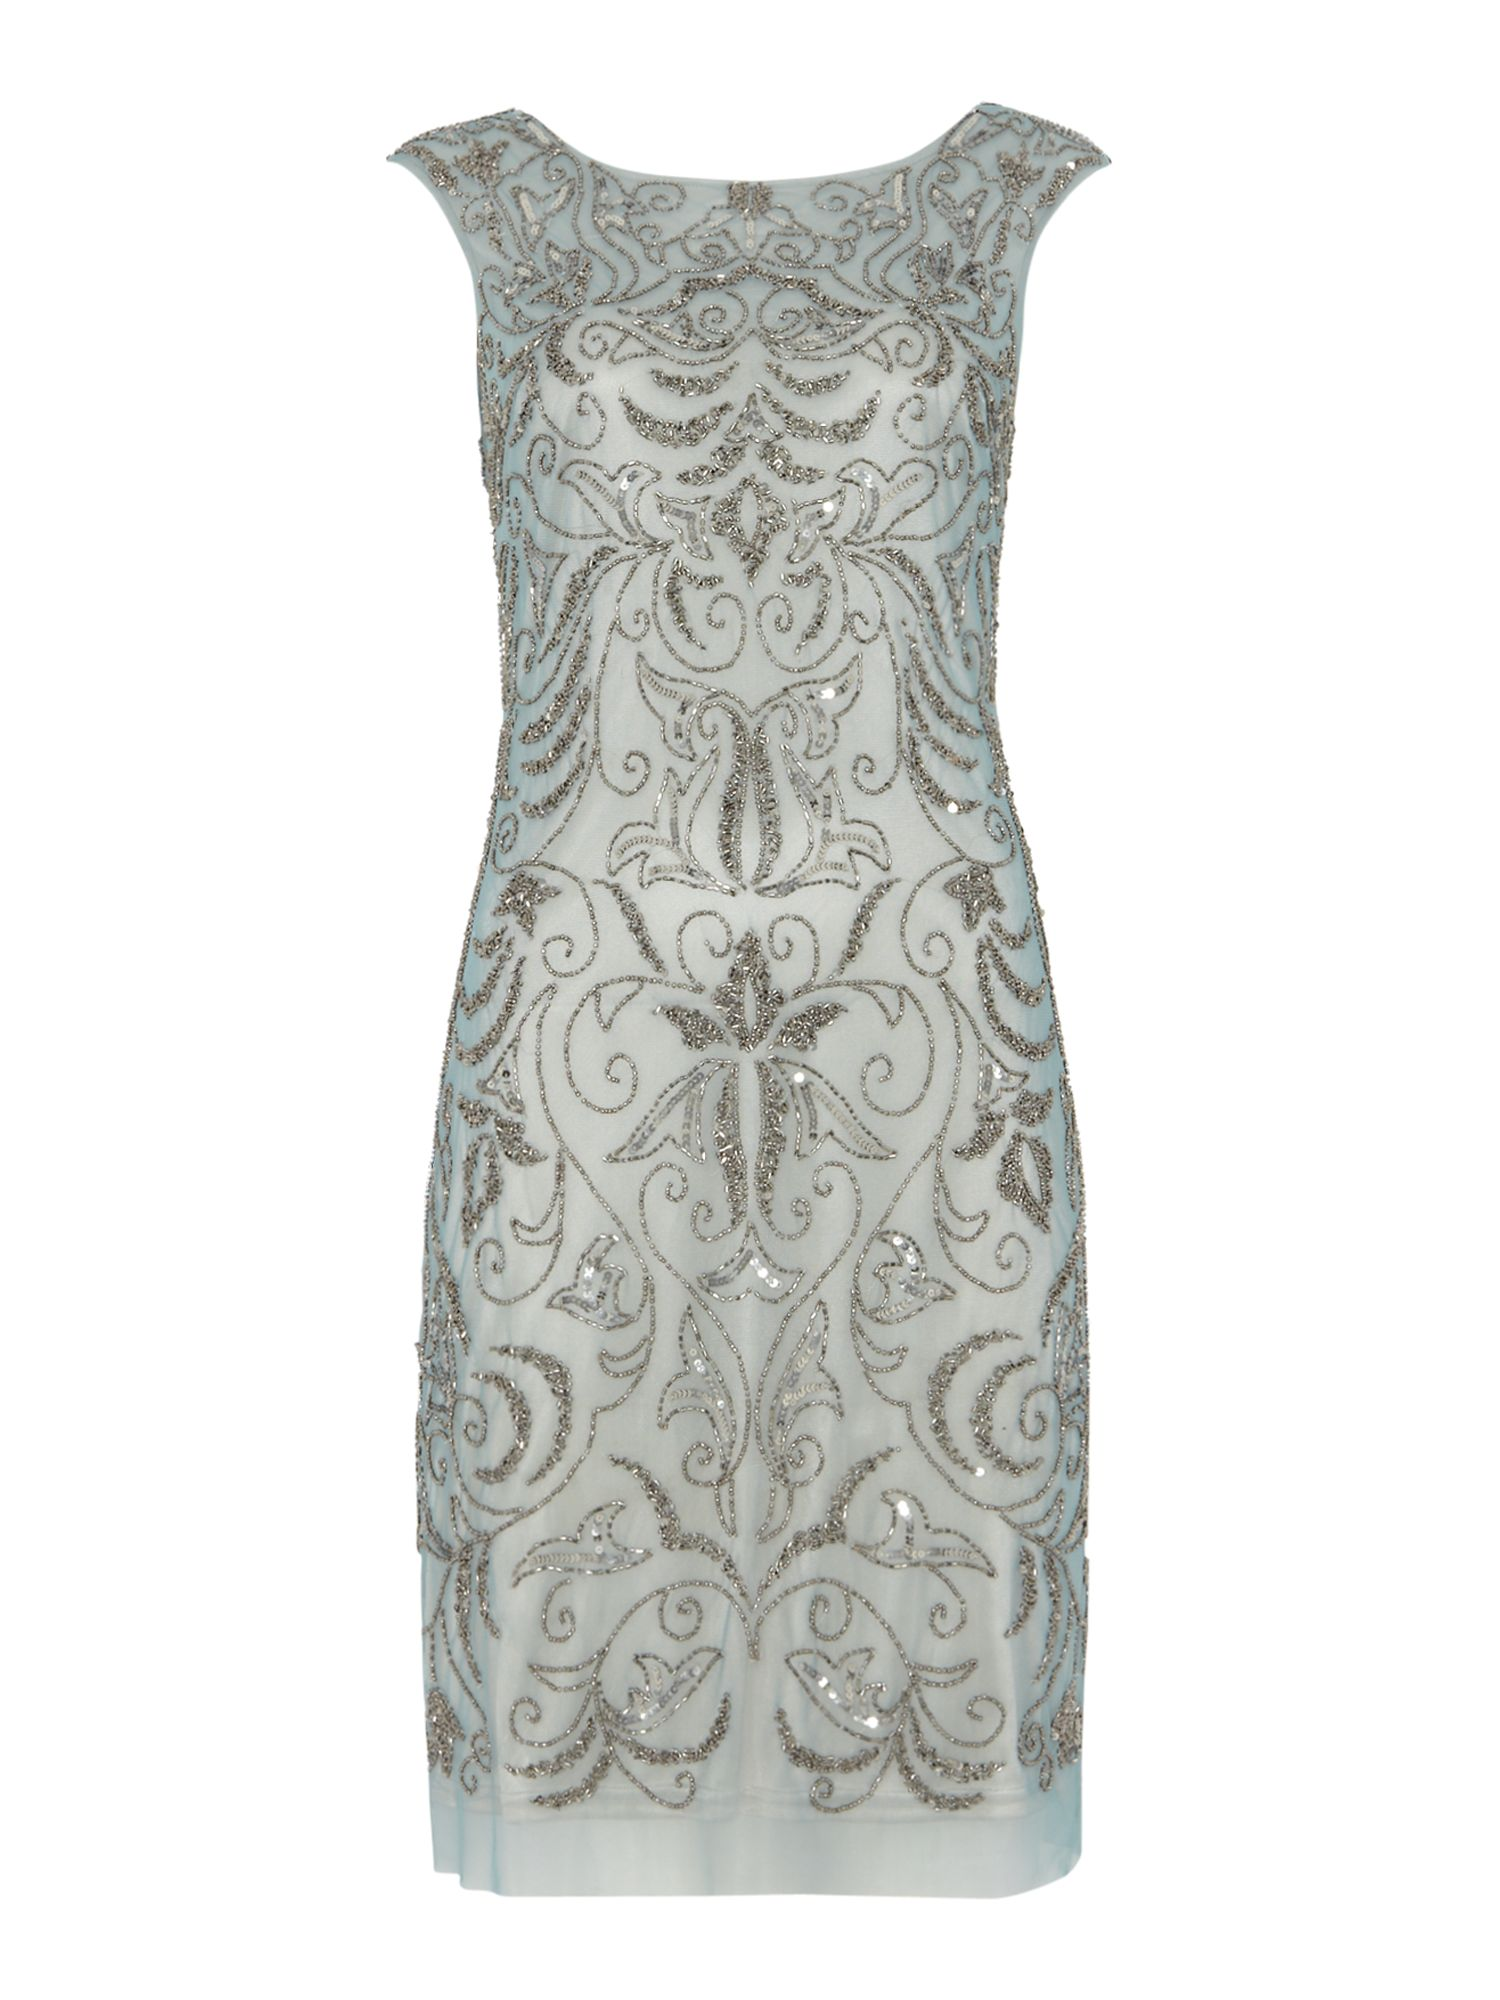 Brocade Beaded Dress